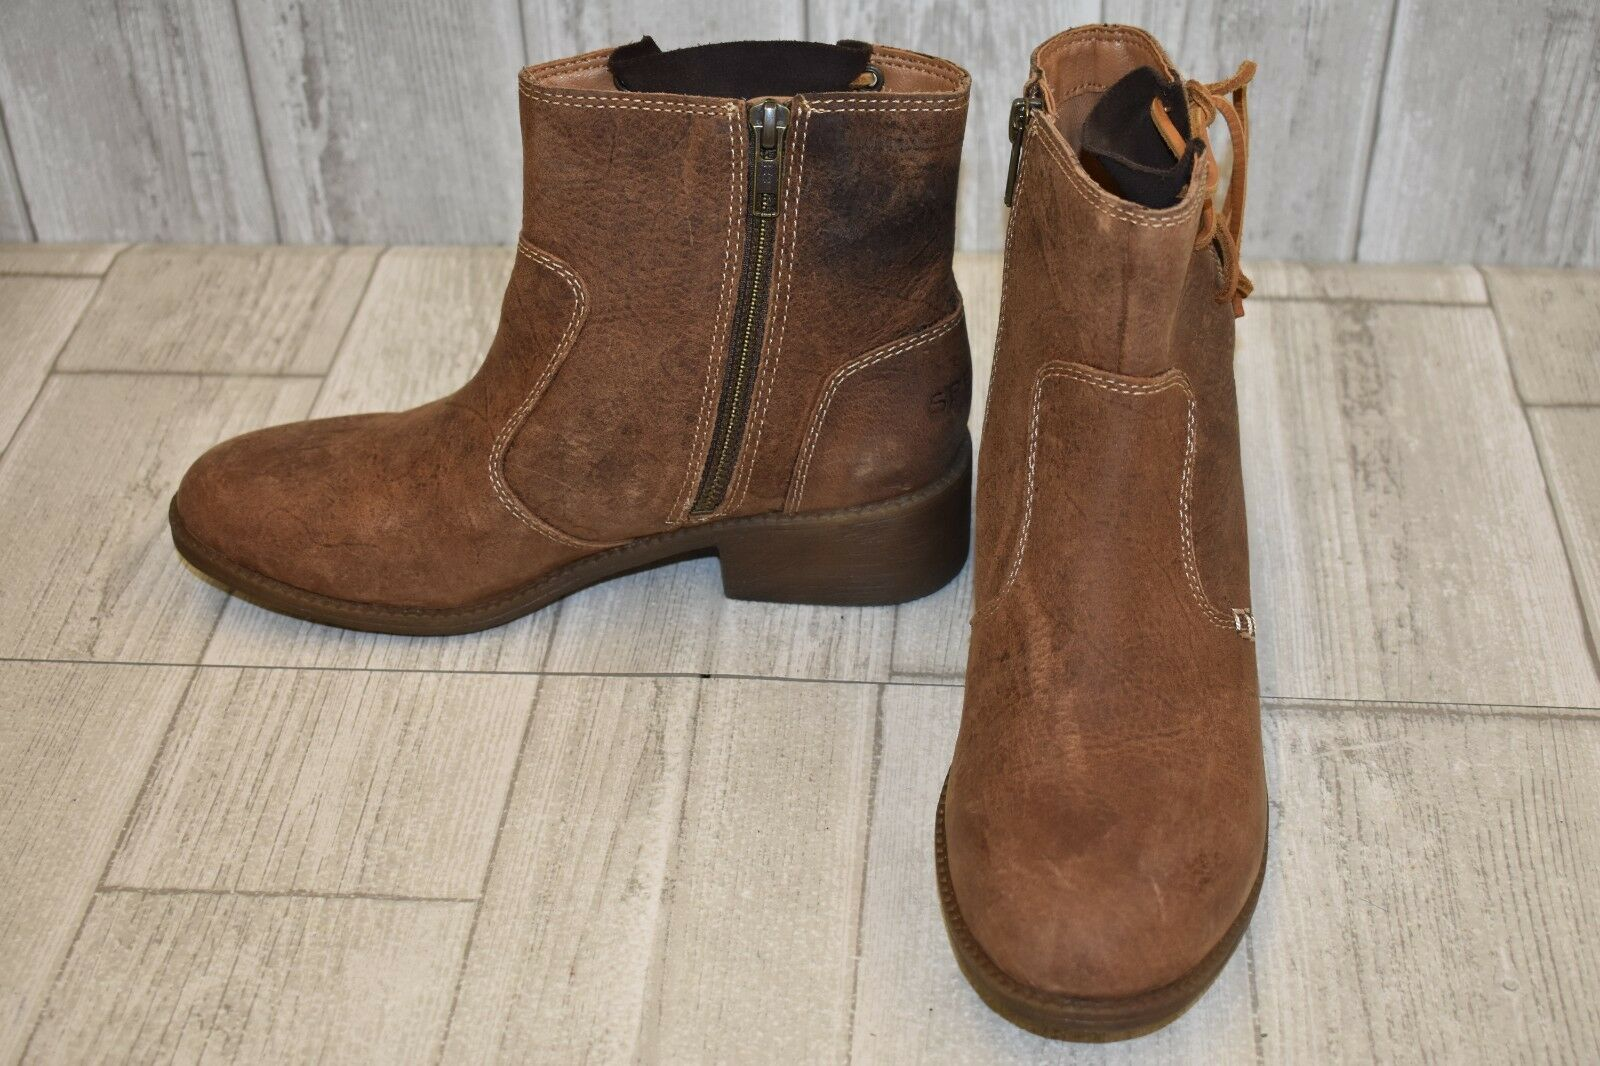 Sperry- Juniper Glyn Boots, Women's Size 6.5 M, Brown